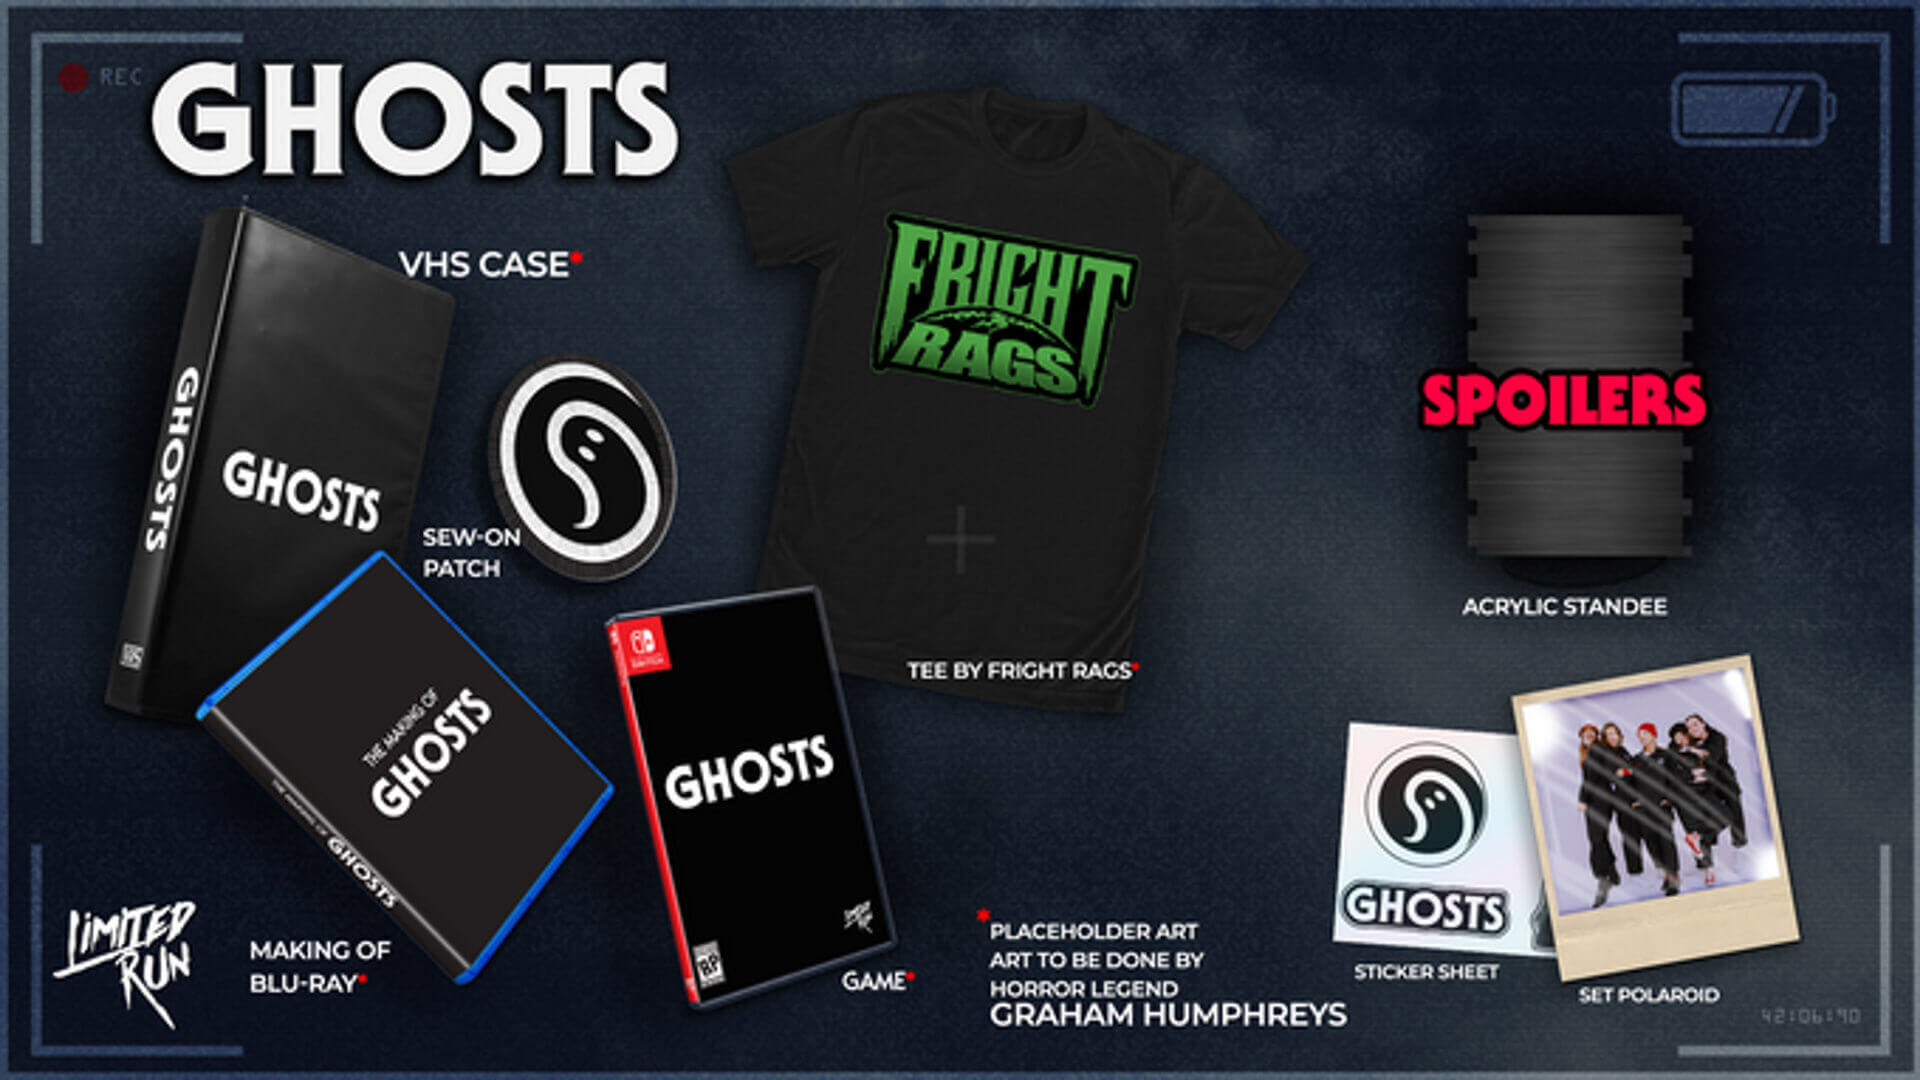 Limited Run Games Example Crowdfunding Ghosts